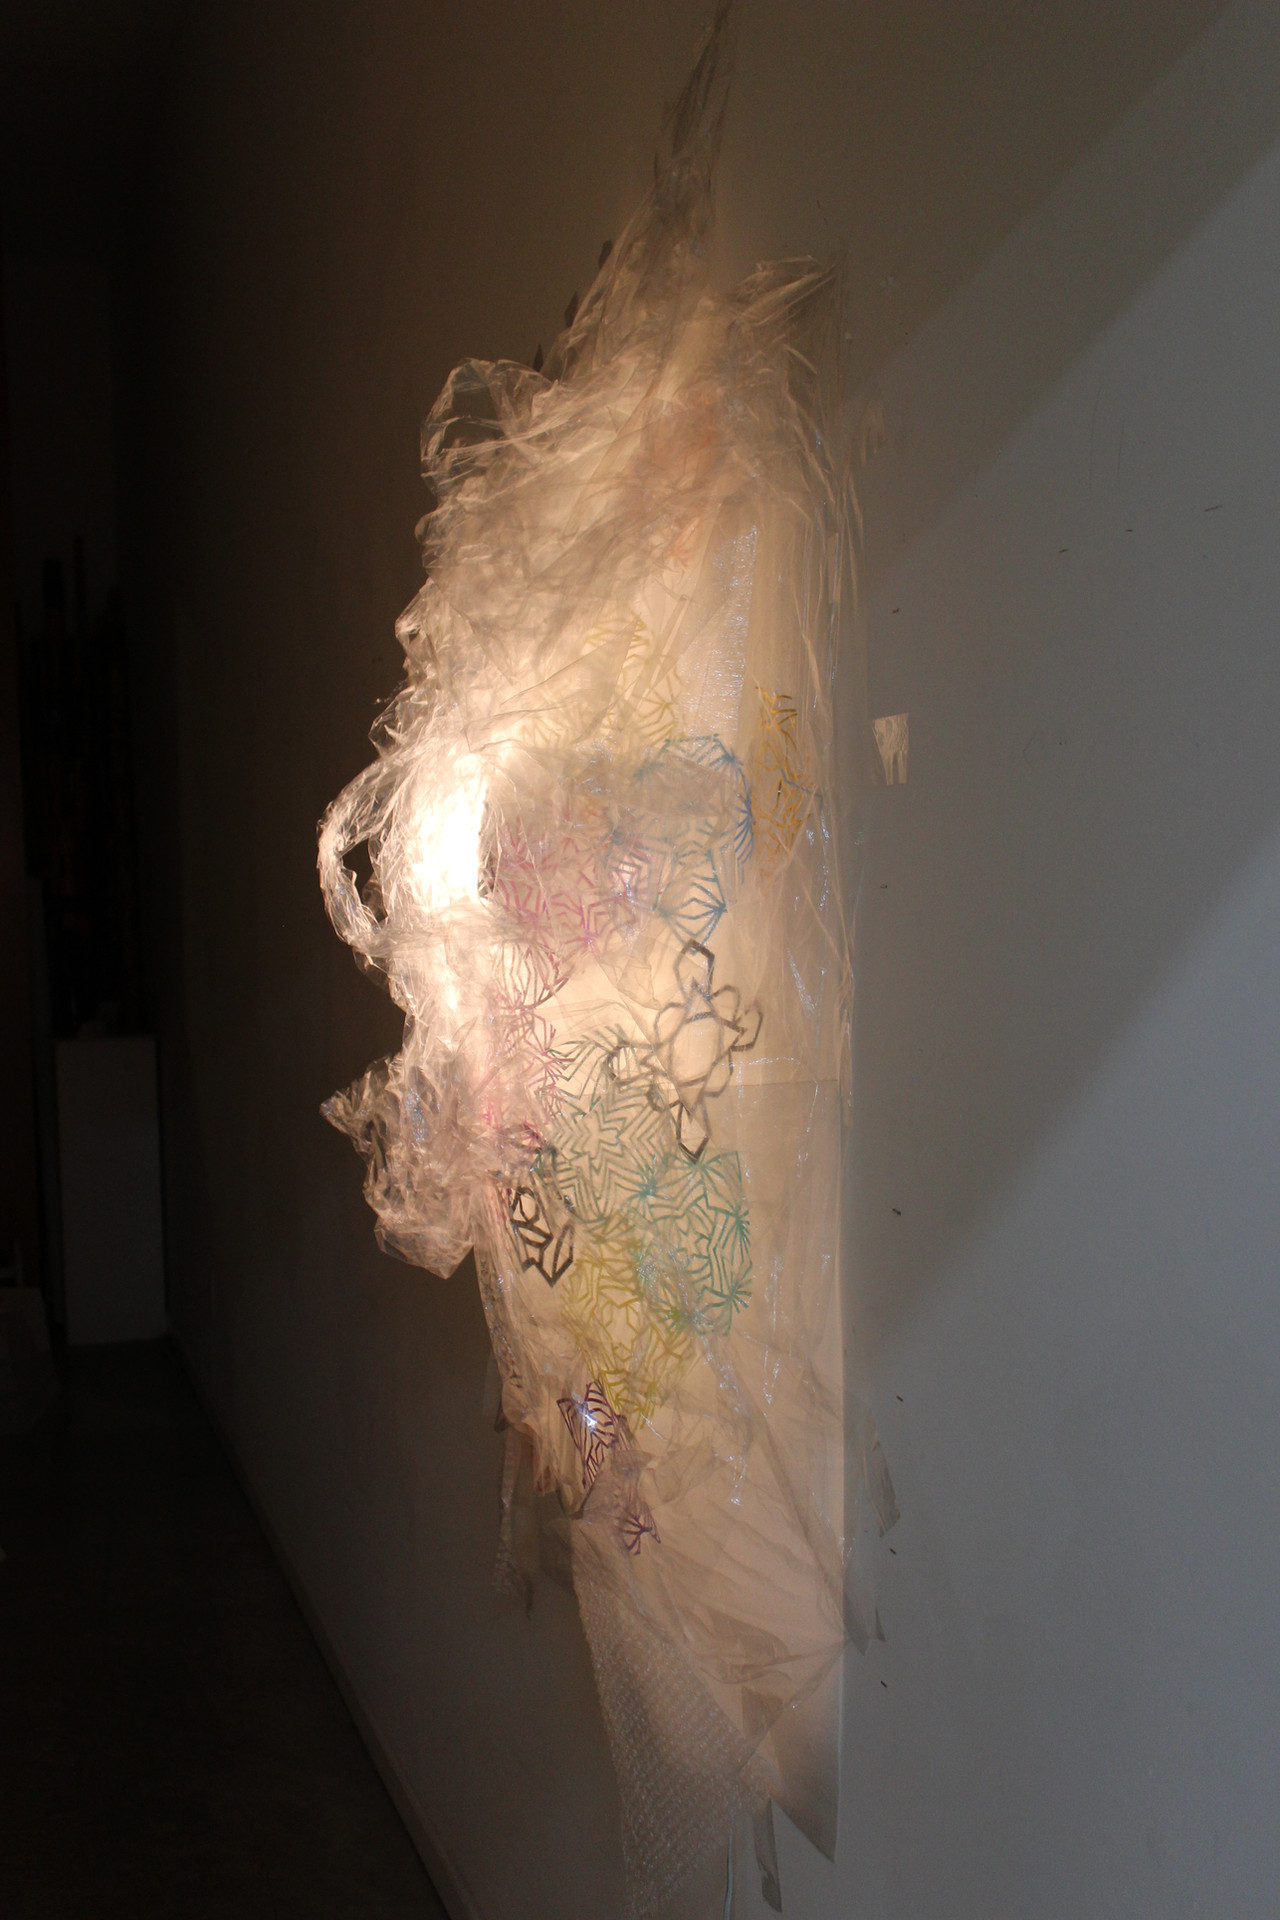 Untitled, mixed media on wall, dimensions variable, 2012